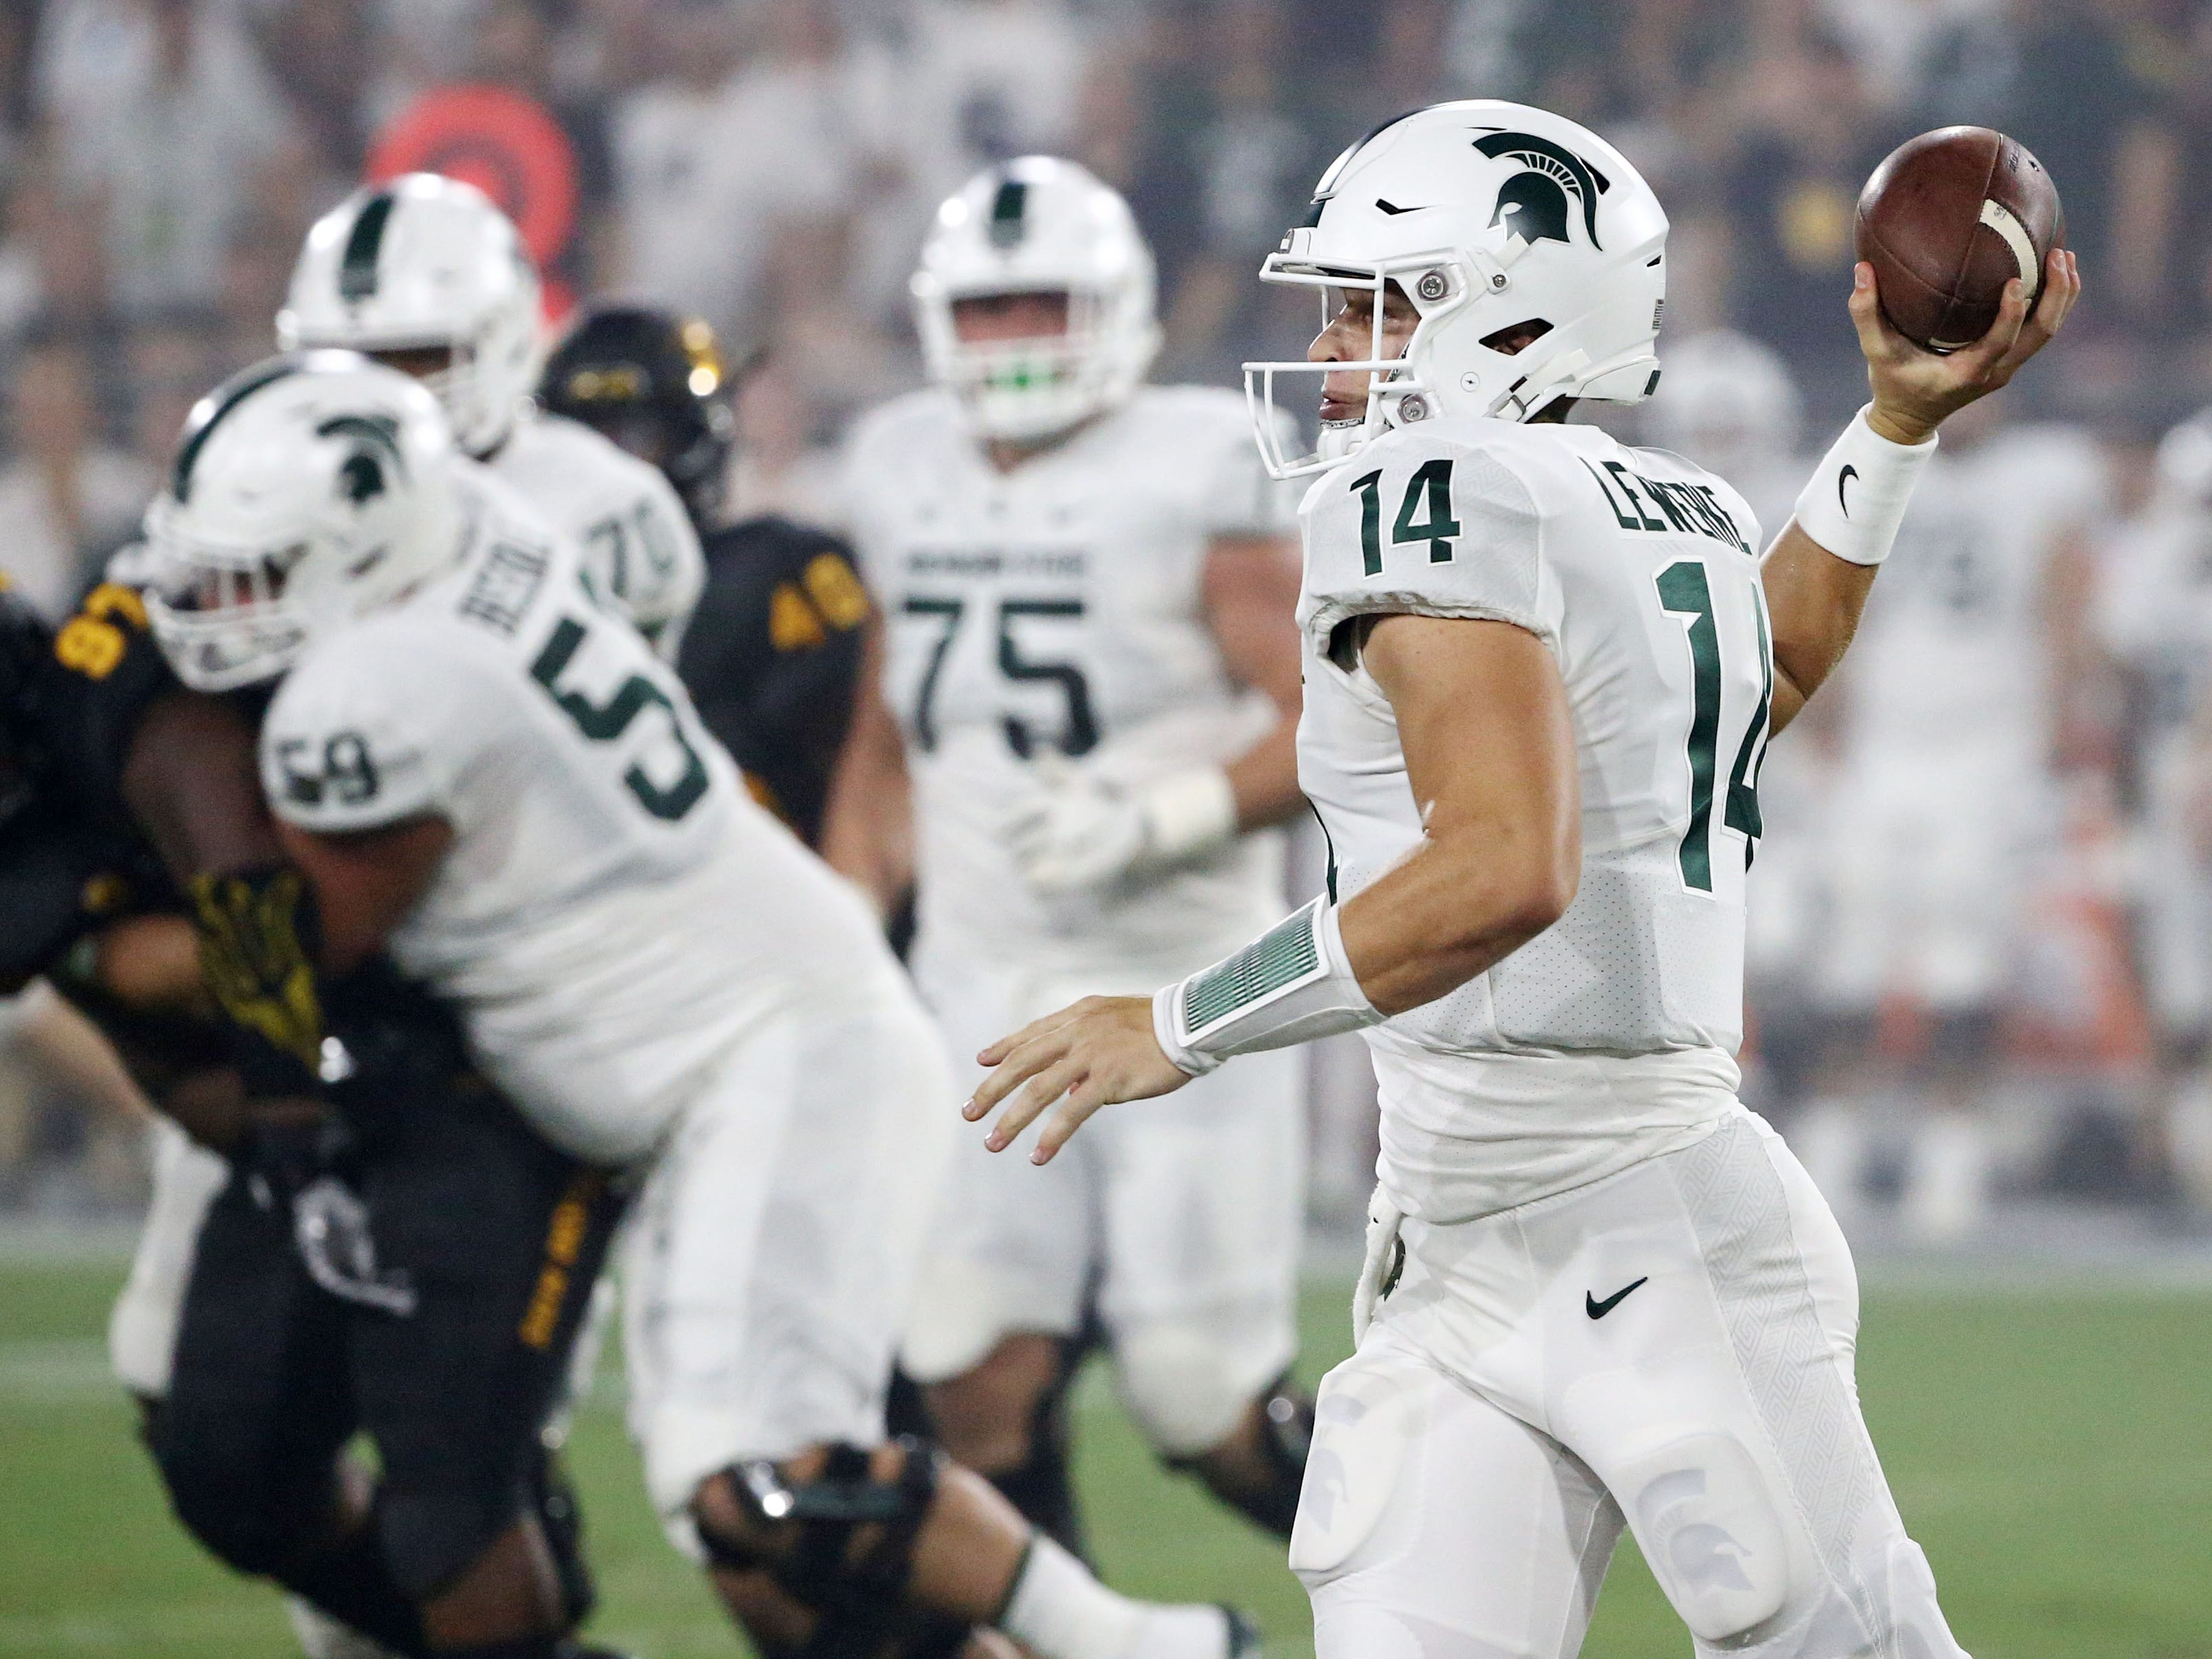 Michigan State quarterback Brian Lewerke throws a pass against Arizona State on Sep. 8, 2018, at Sun Devil Stadium.